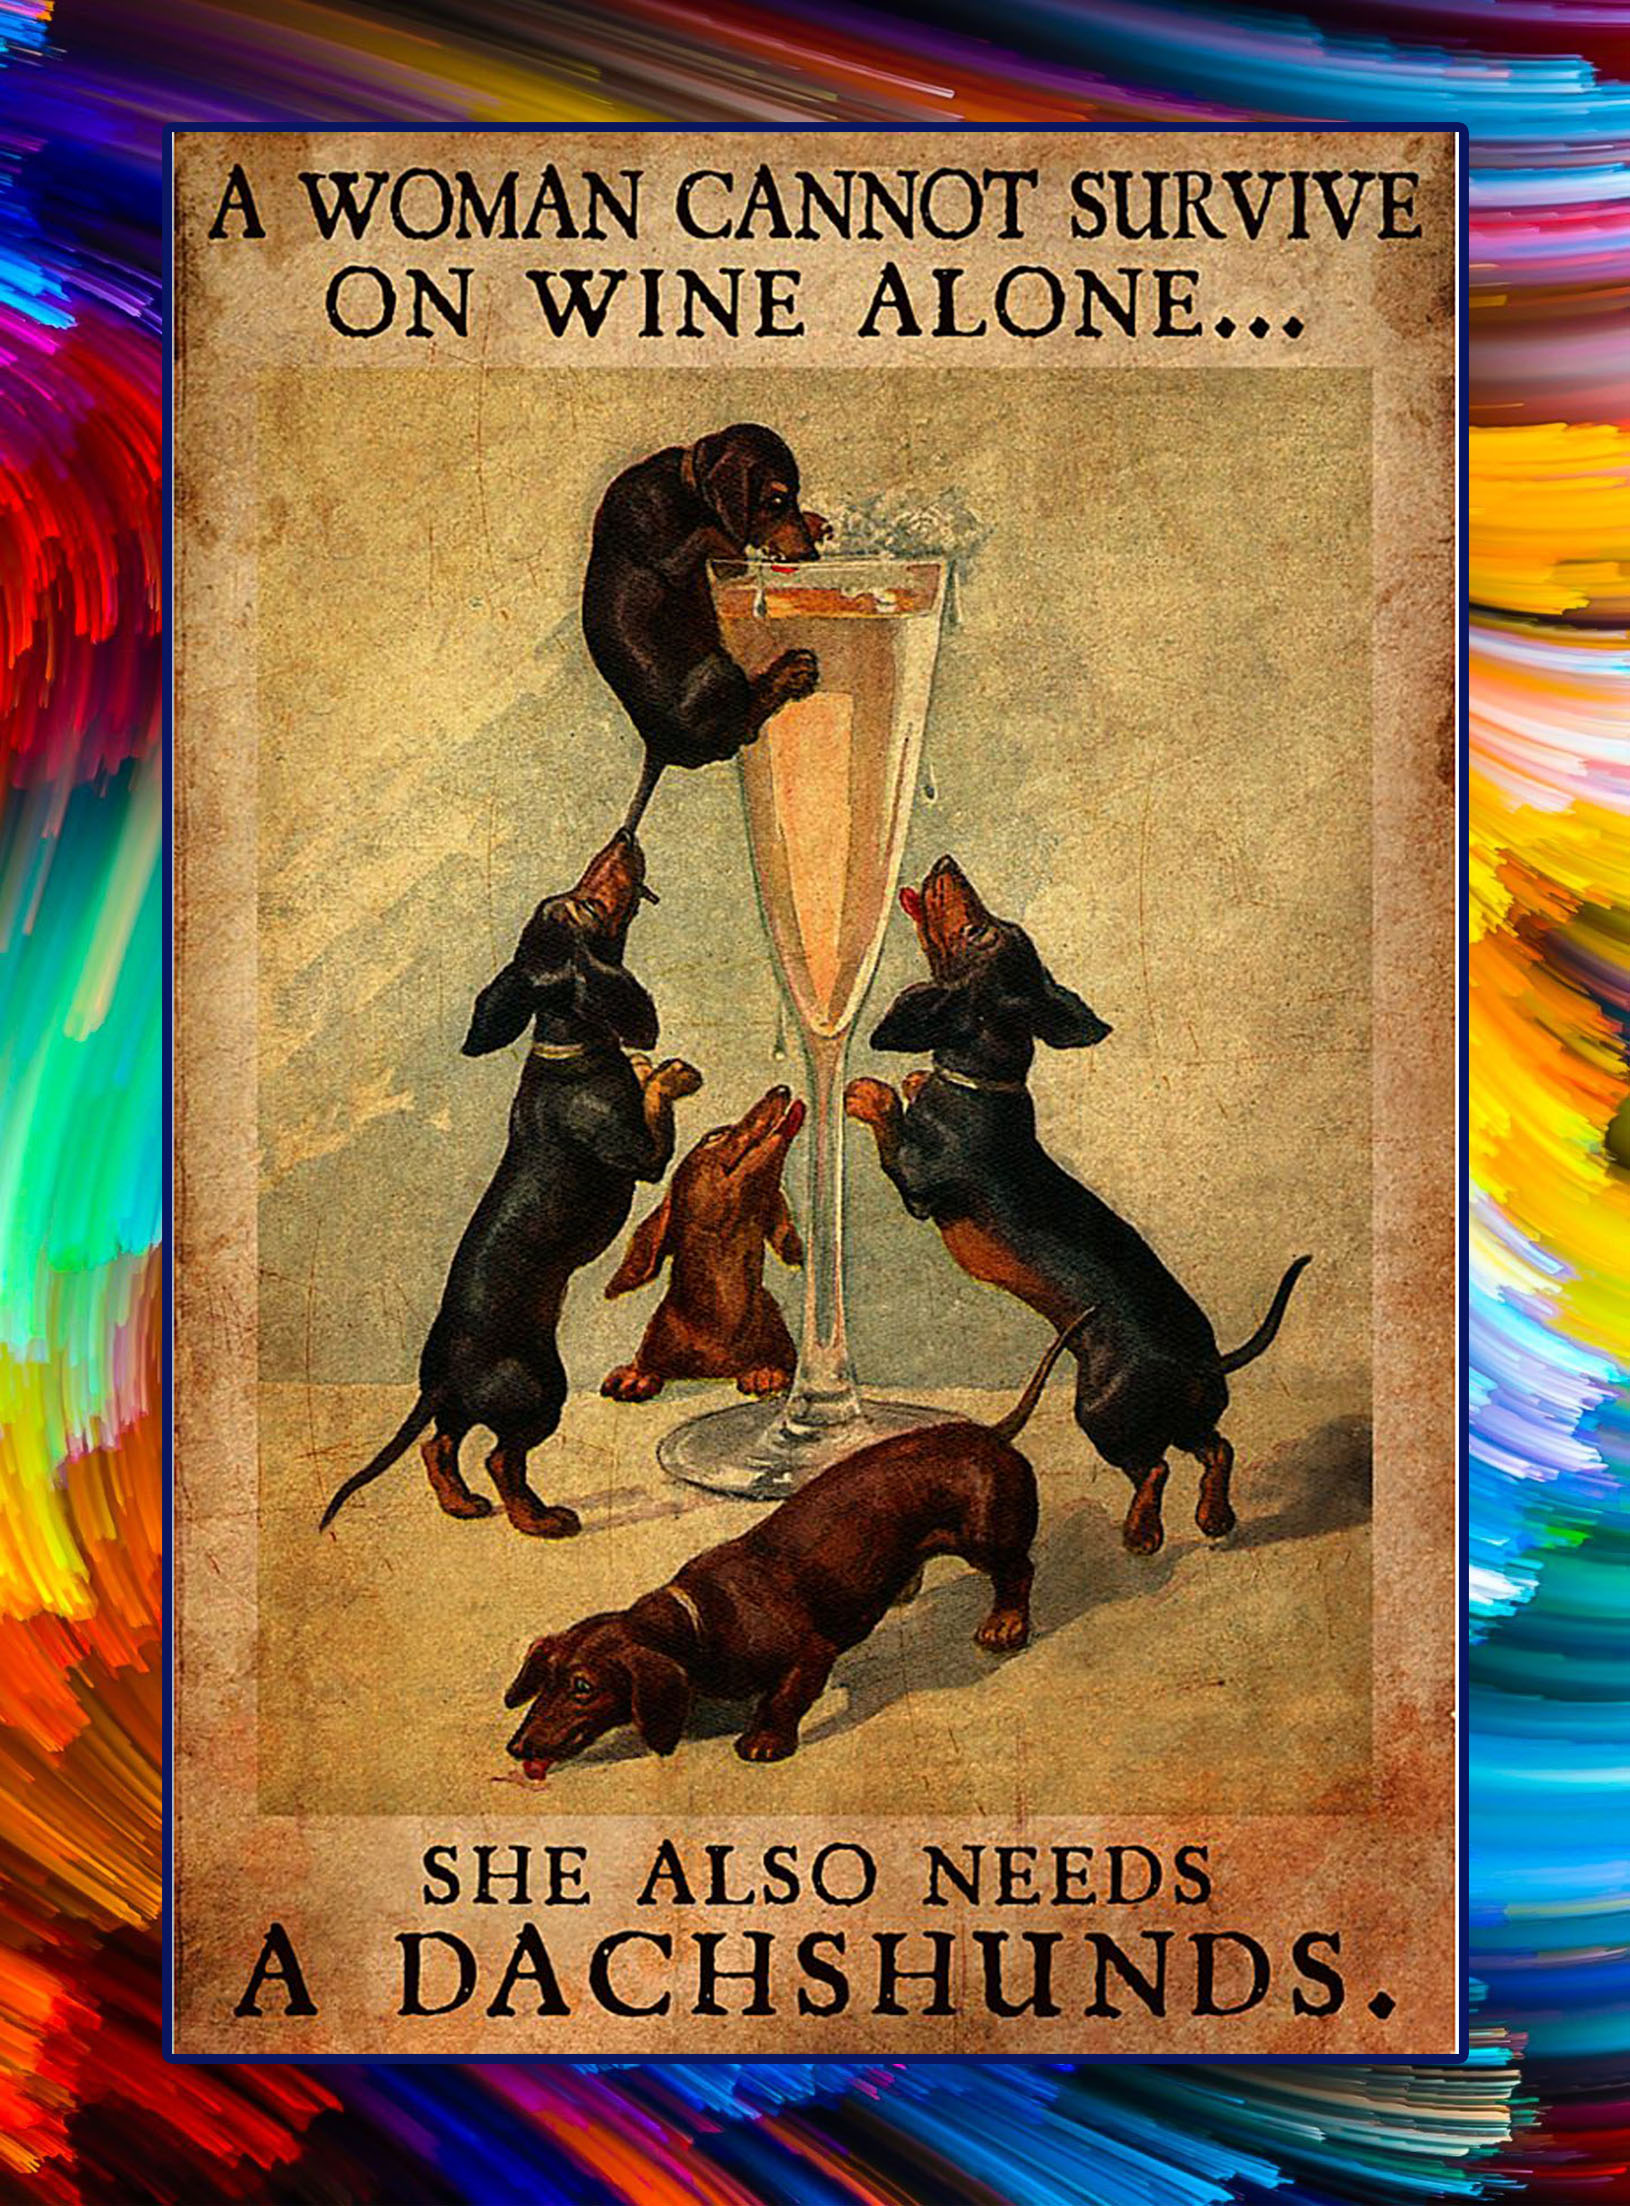 A woman cannot survive on wine alone she also needs a dachshunds poster - A3